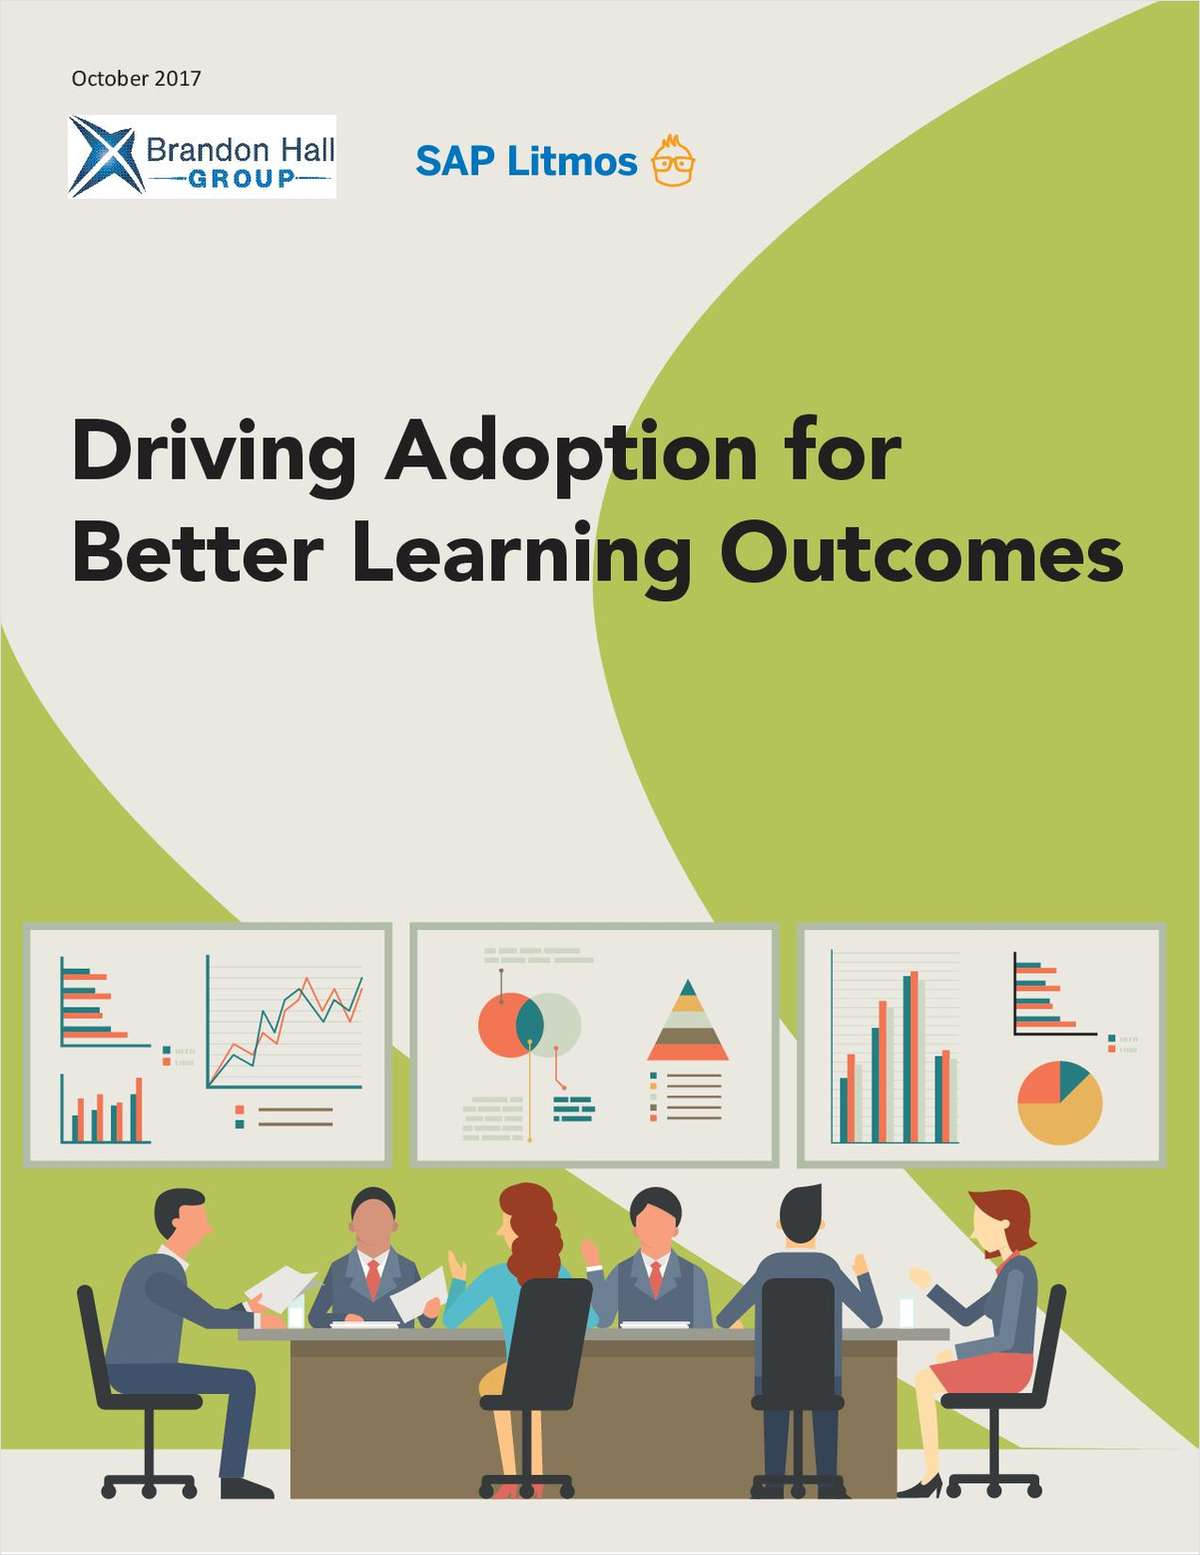 Driving Adoption for Better Learning Outcomes